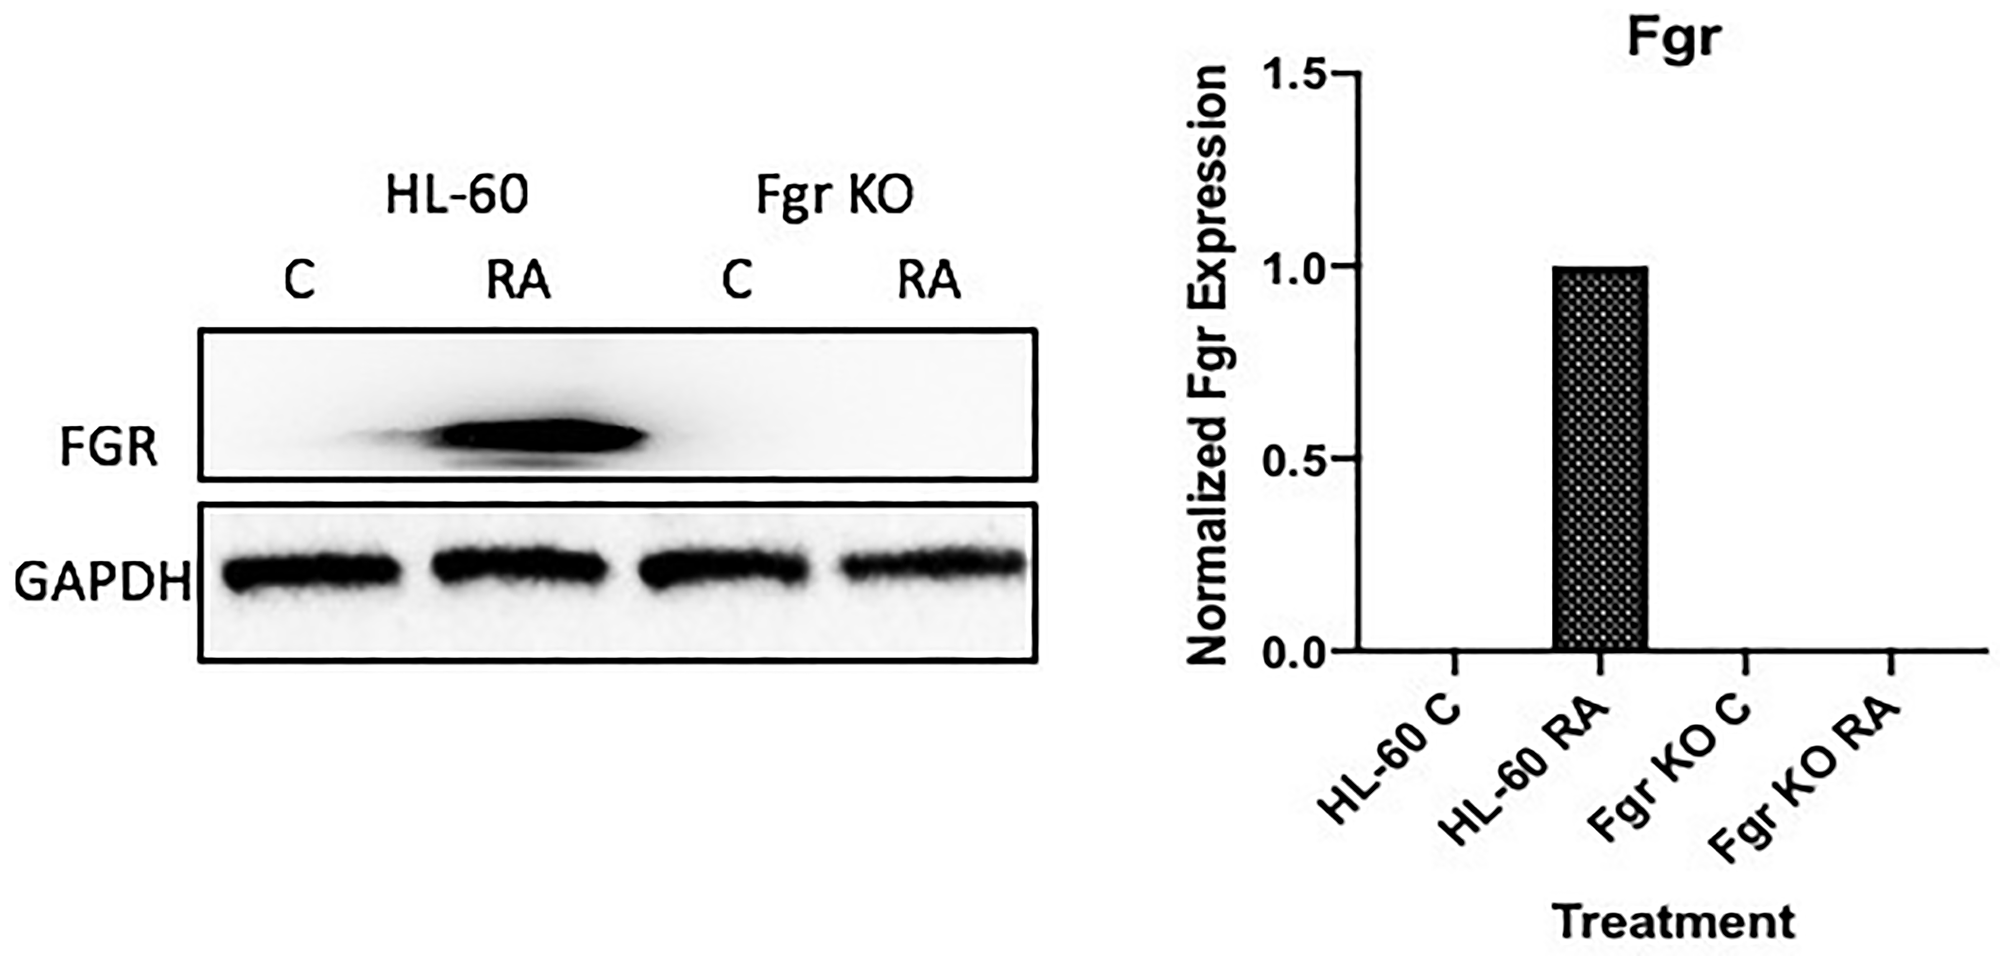 FGR Western blot analysis of HL-60 wt and FGR KO cells untreated and treated with RA.